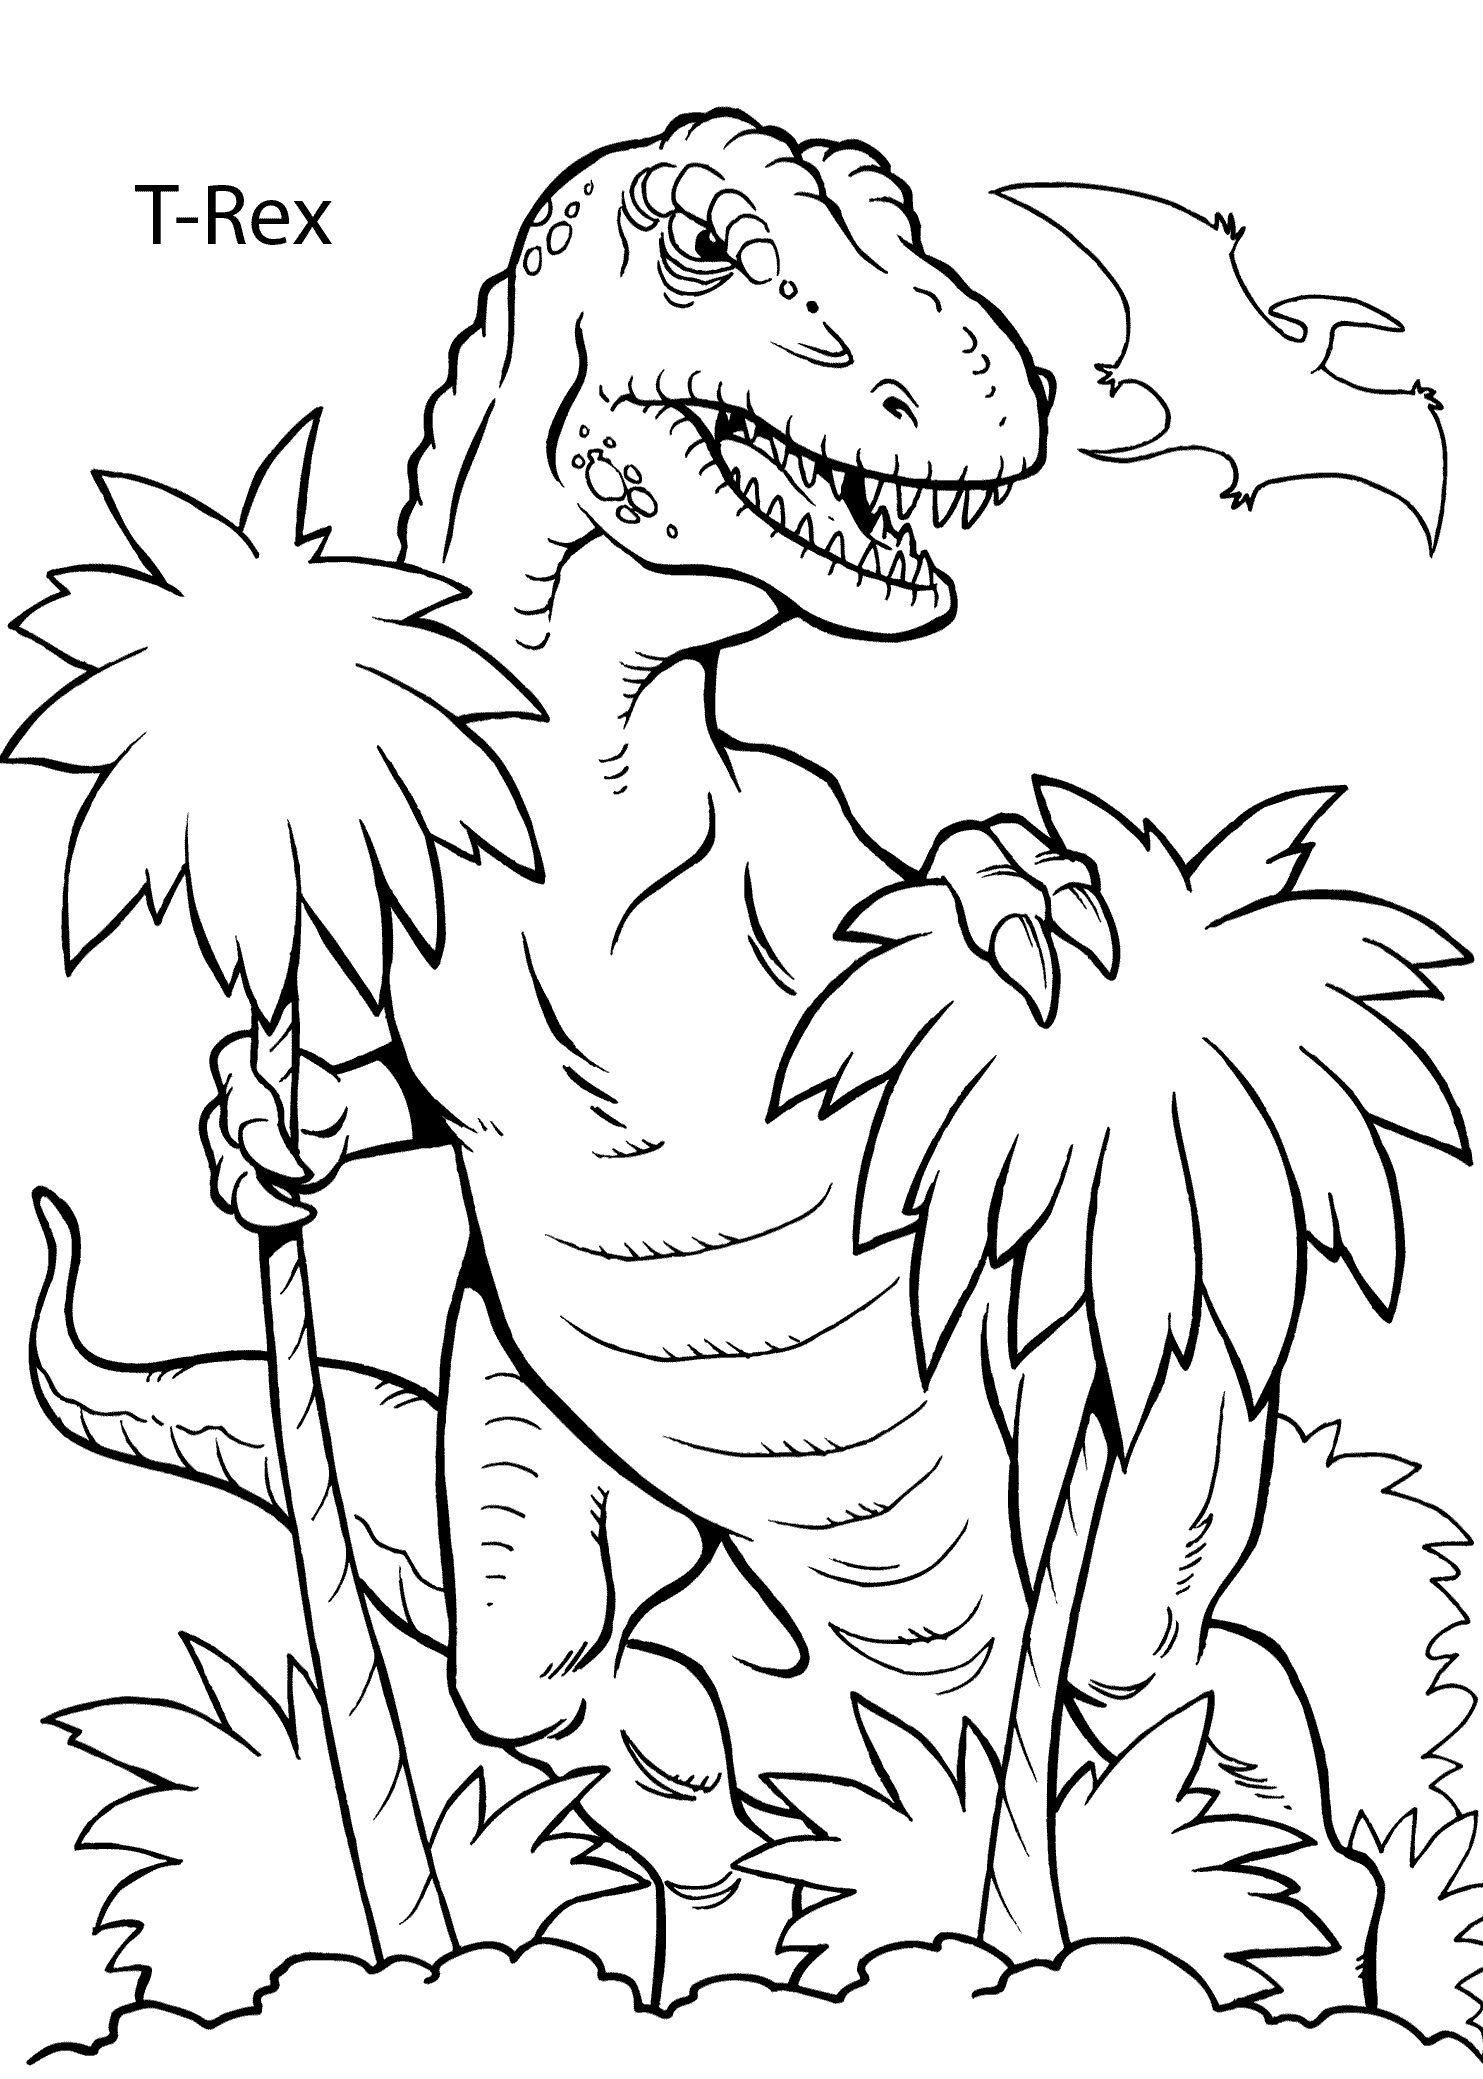 50 Complex Coloring Pages Dinosaurs Printable Dinosaur Coloring